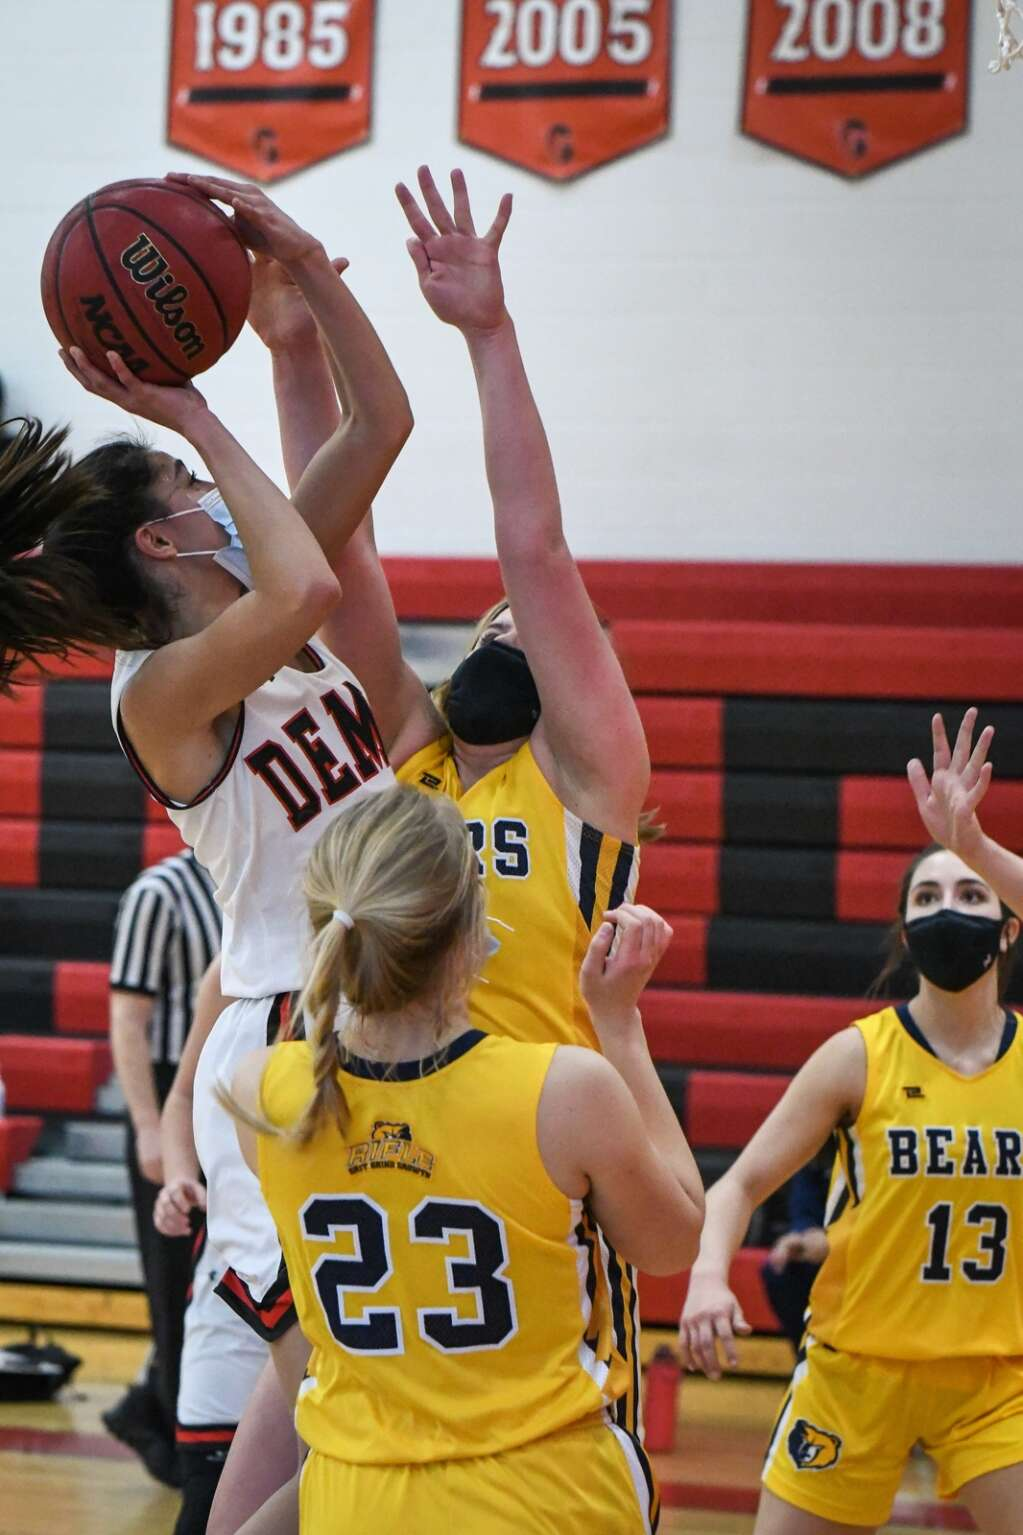 Glenwood Springs Demon Miah Suarez leaps through the defending Rifle Bears during Tuesday night's rivalry game at Glenwood Springs High School. |Chelsea Self / Post Independent